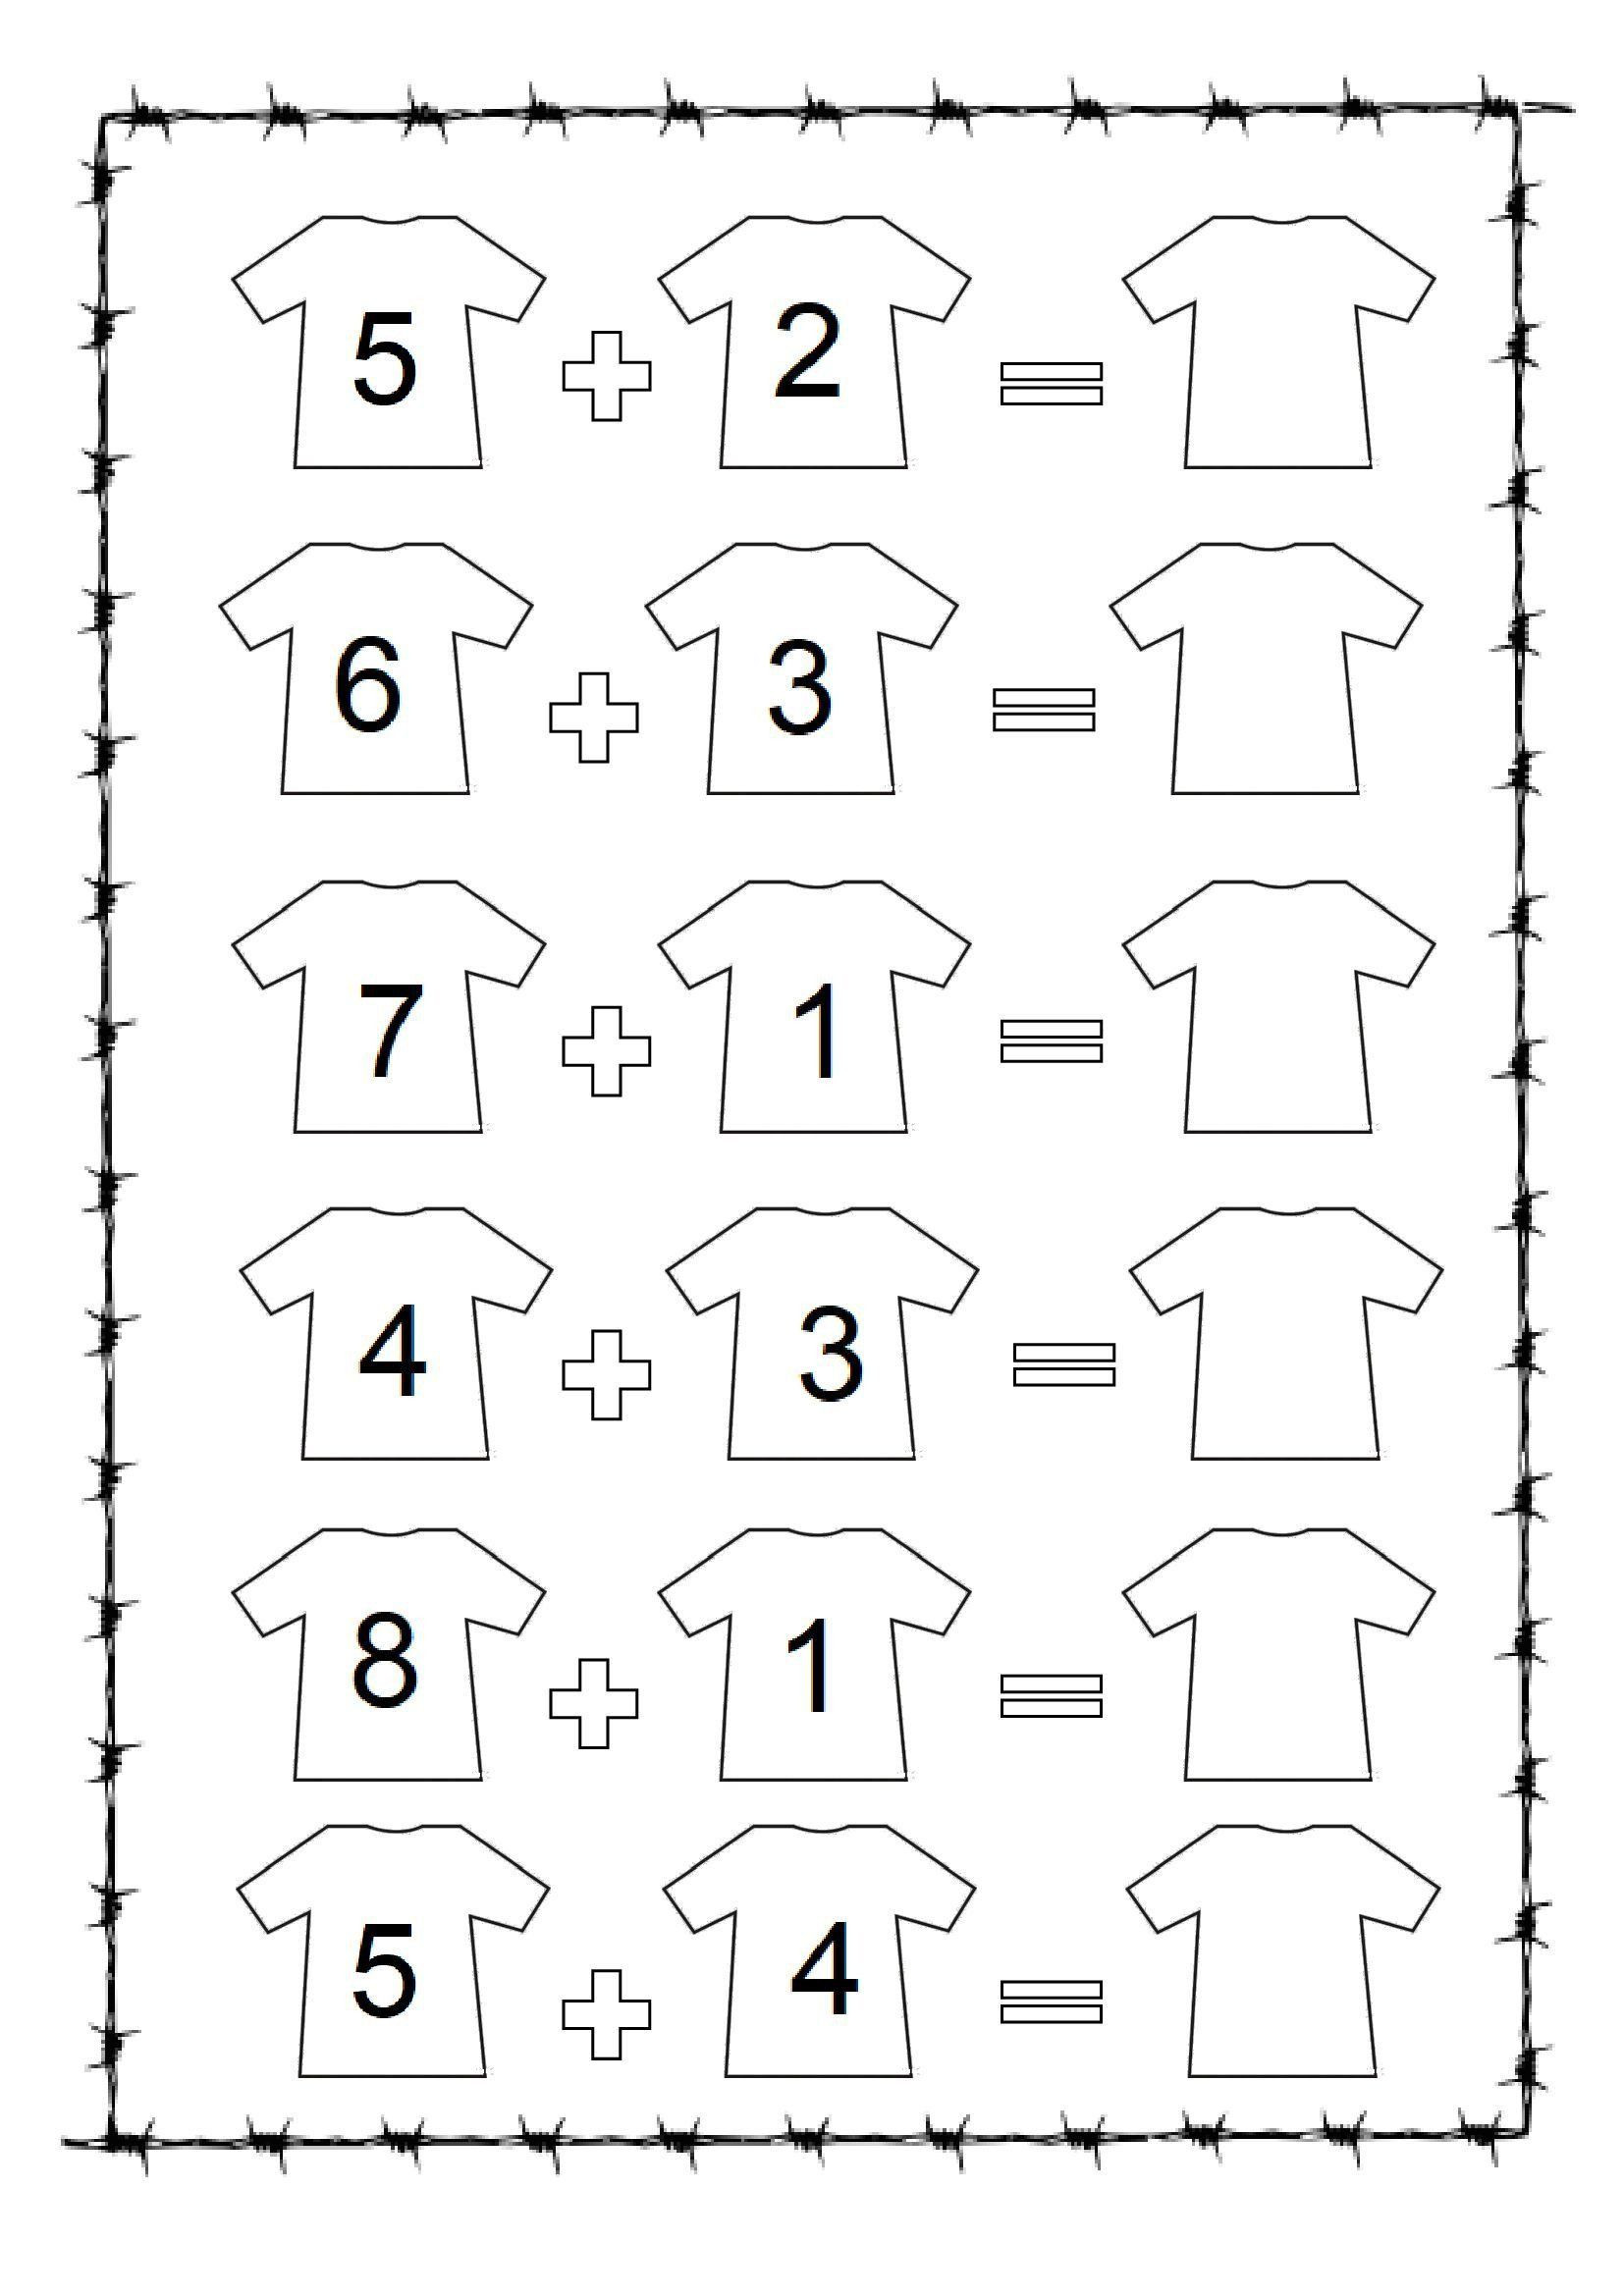 Preschool Math Worksheets Pdf Pin On Free Printable Math Worksheets